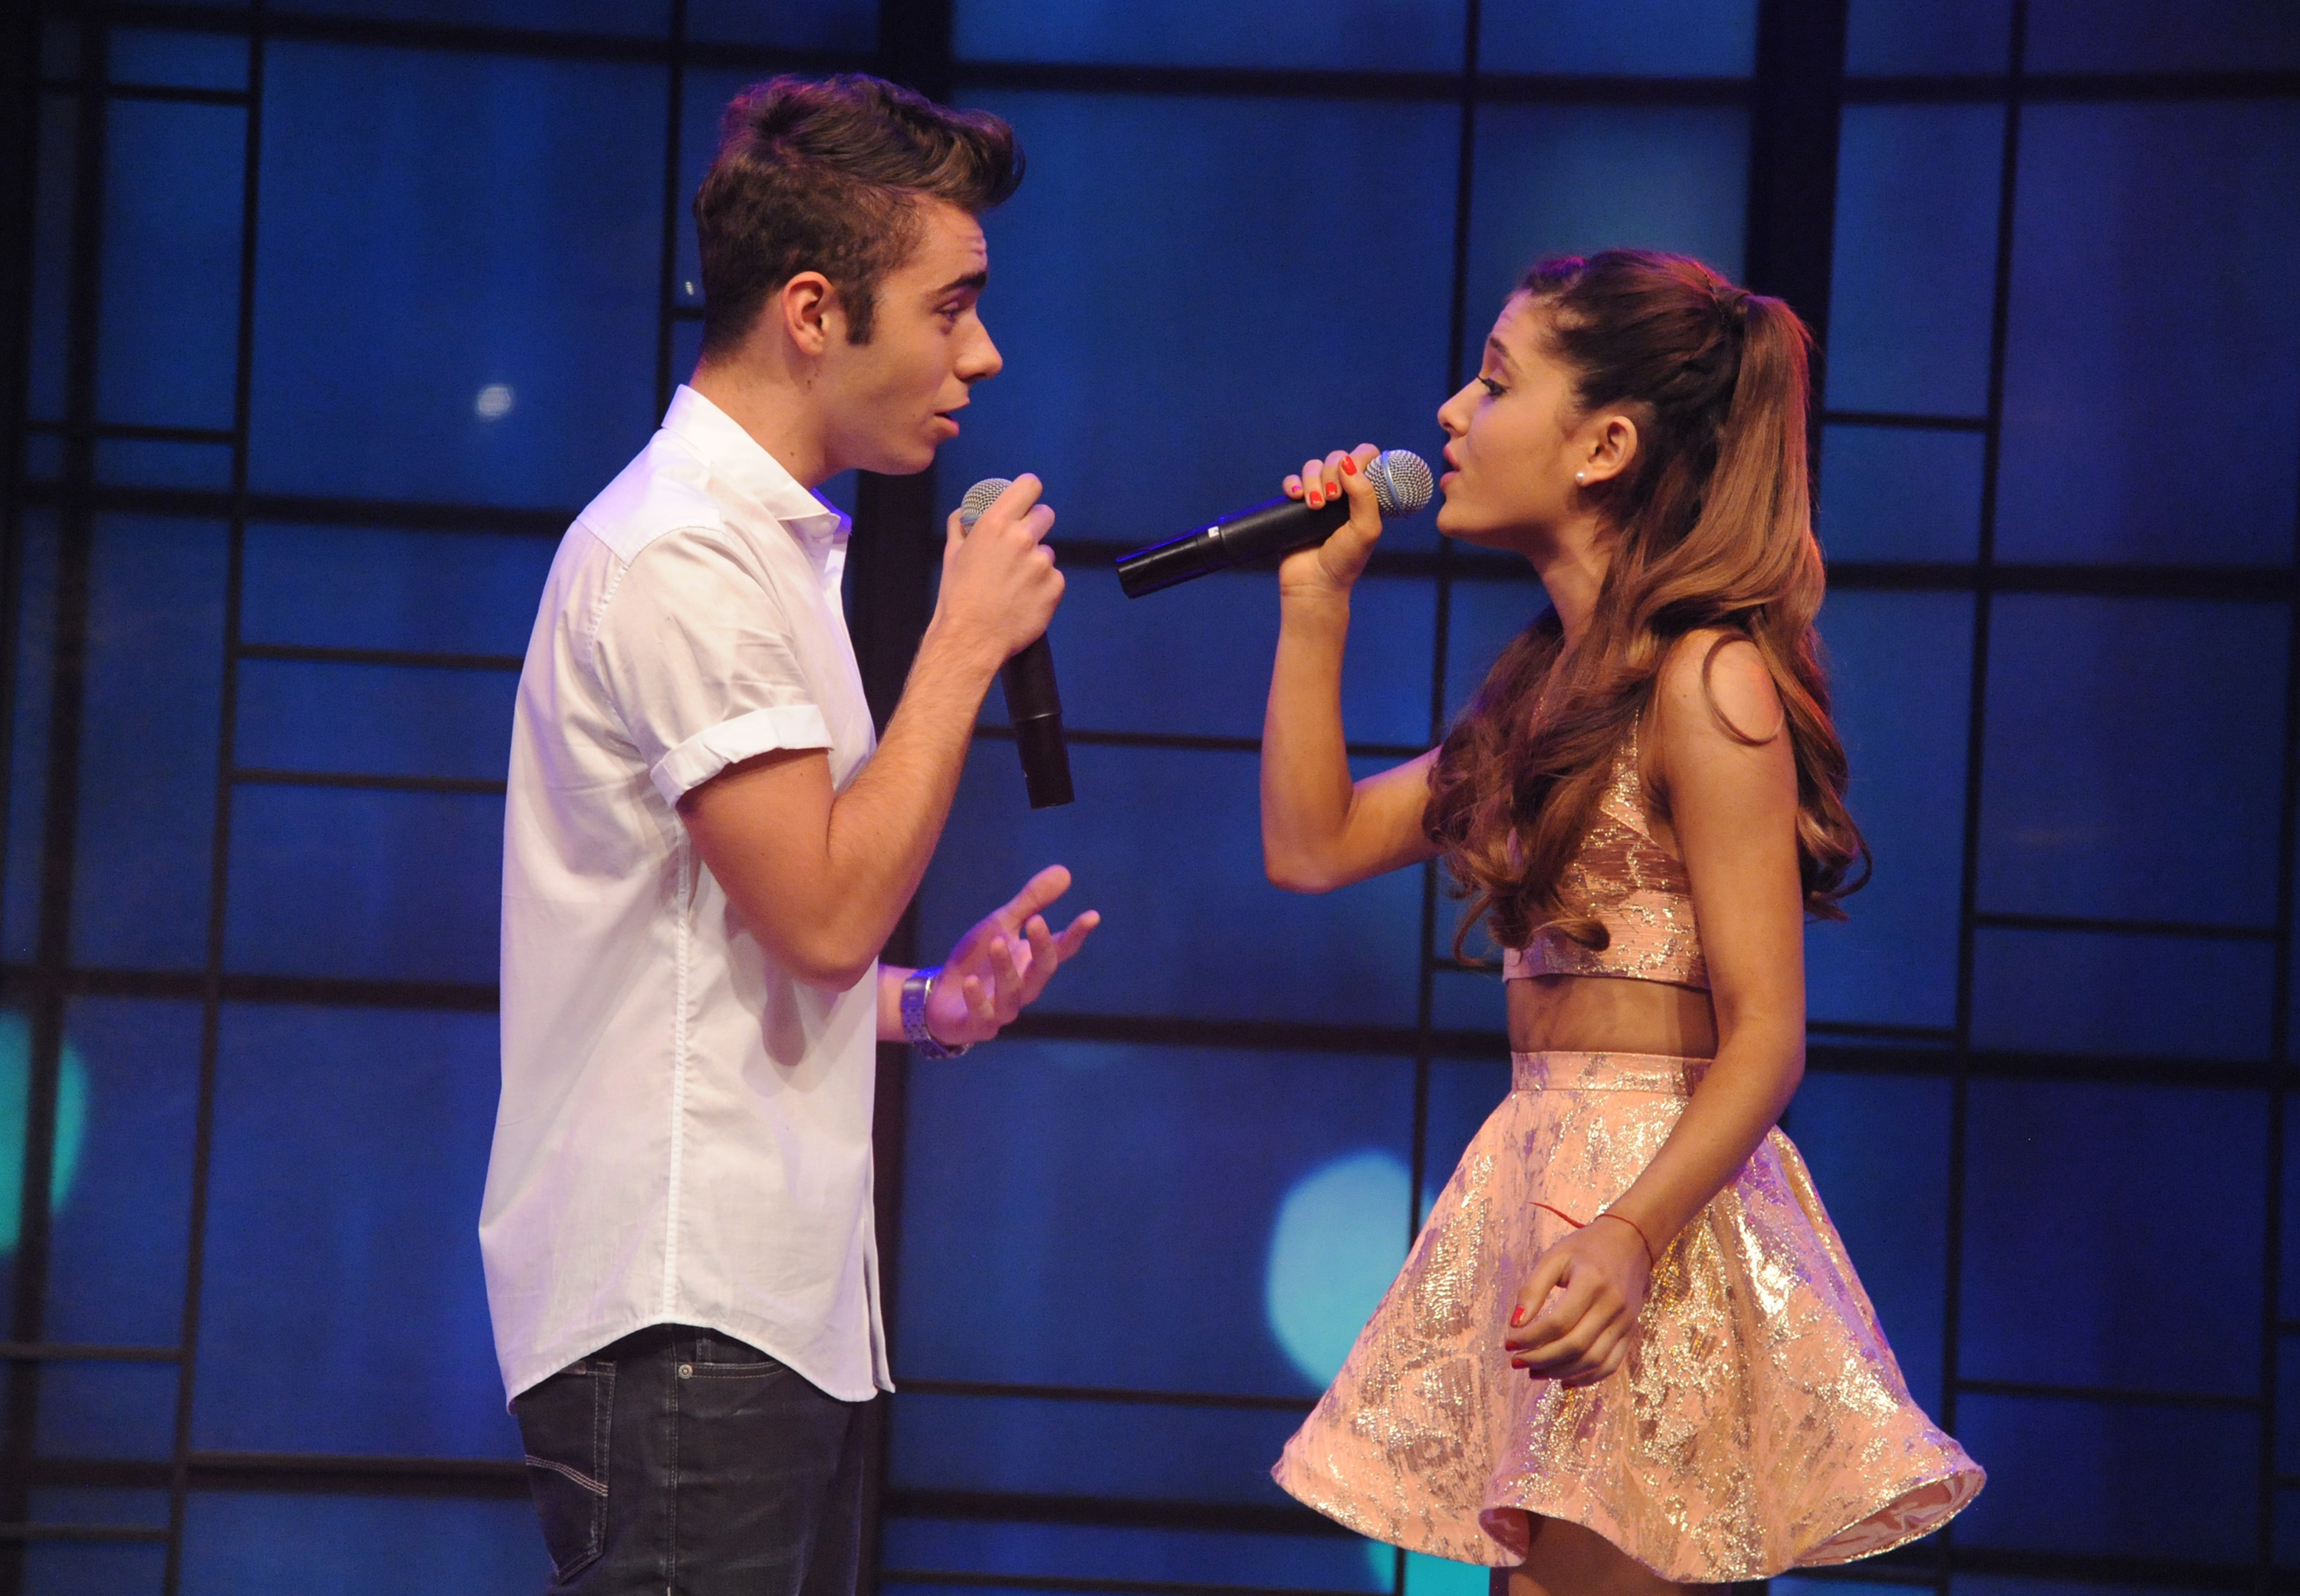 Nathan Sykes breathes a sigh of relief after not getting a mention on ex-girlfriend Ariana Grande's lastest track